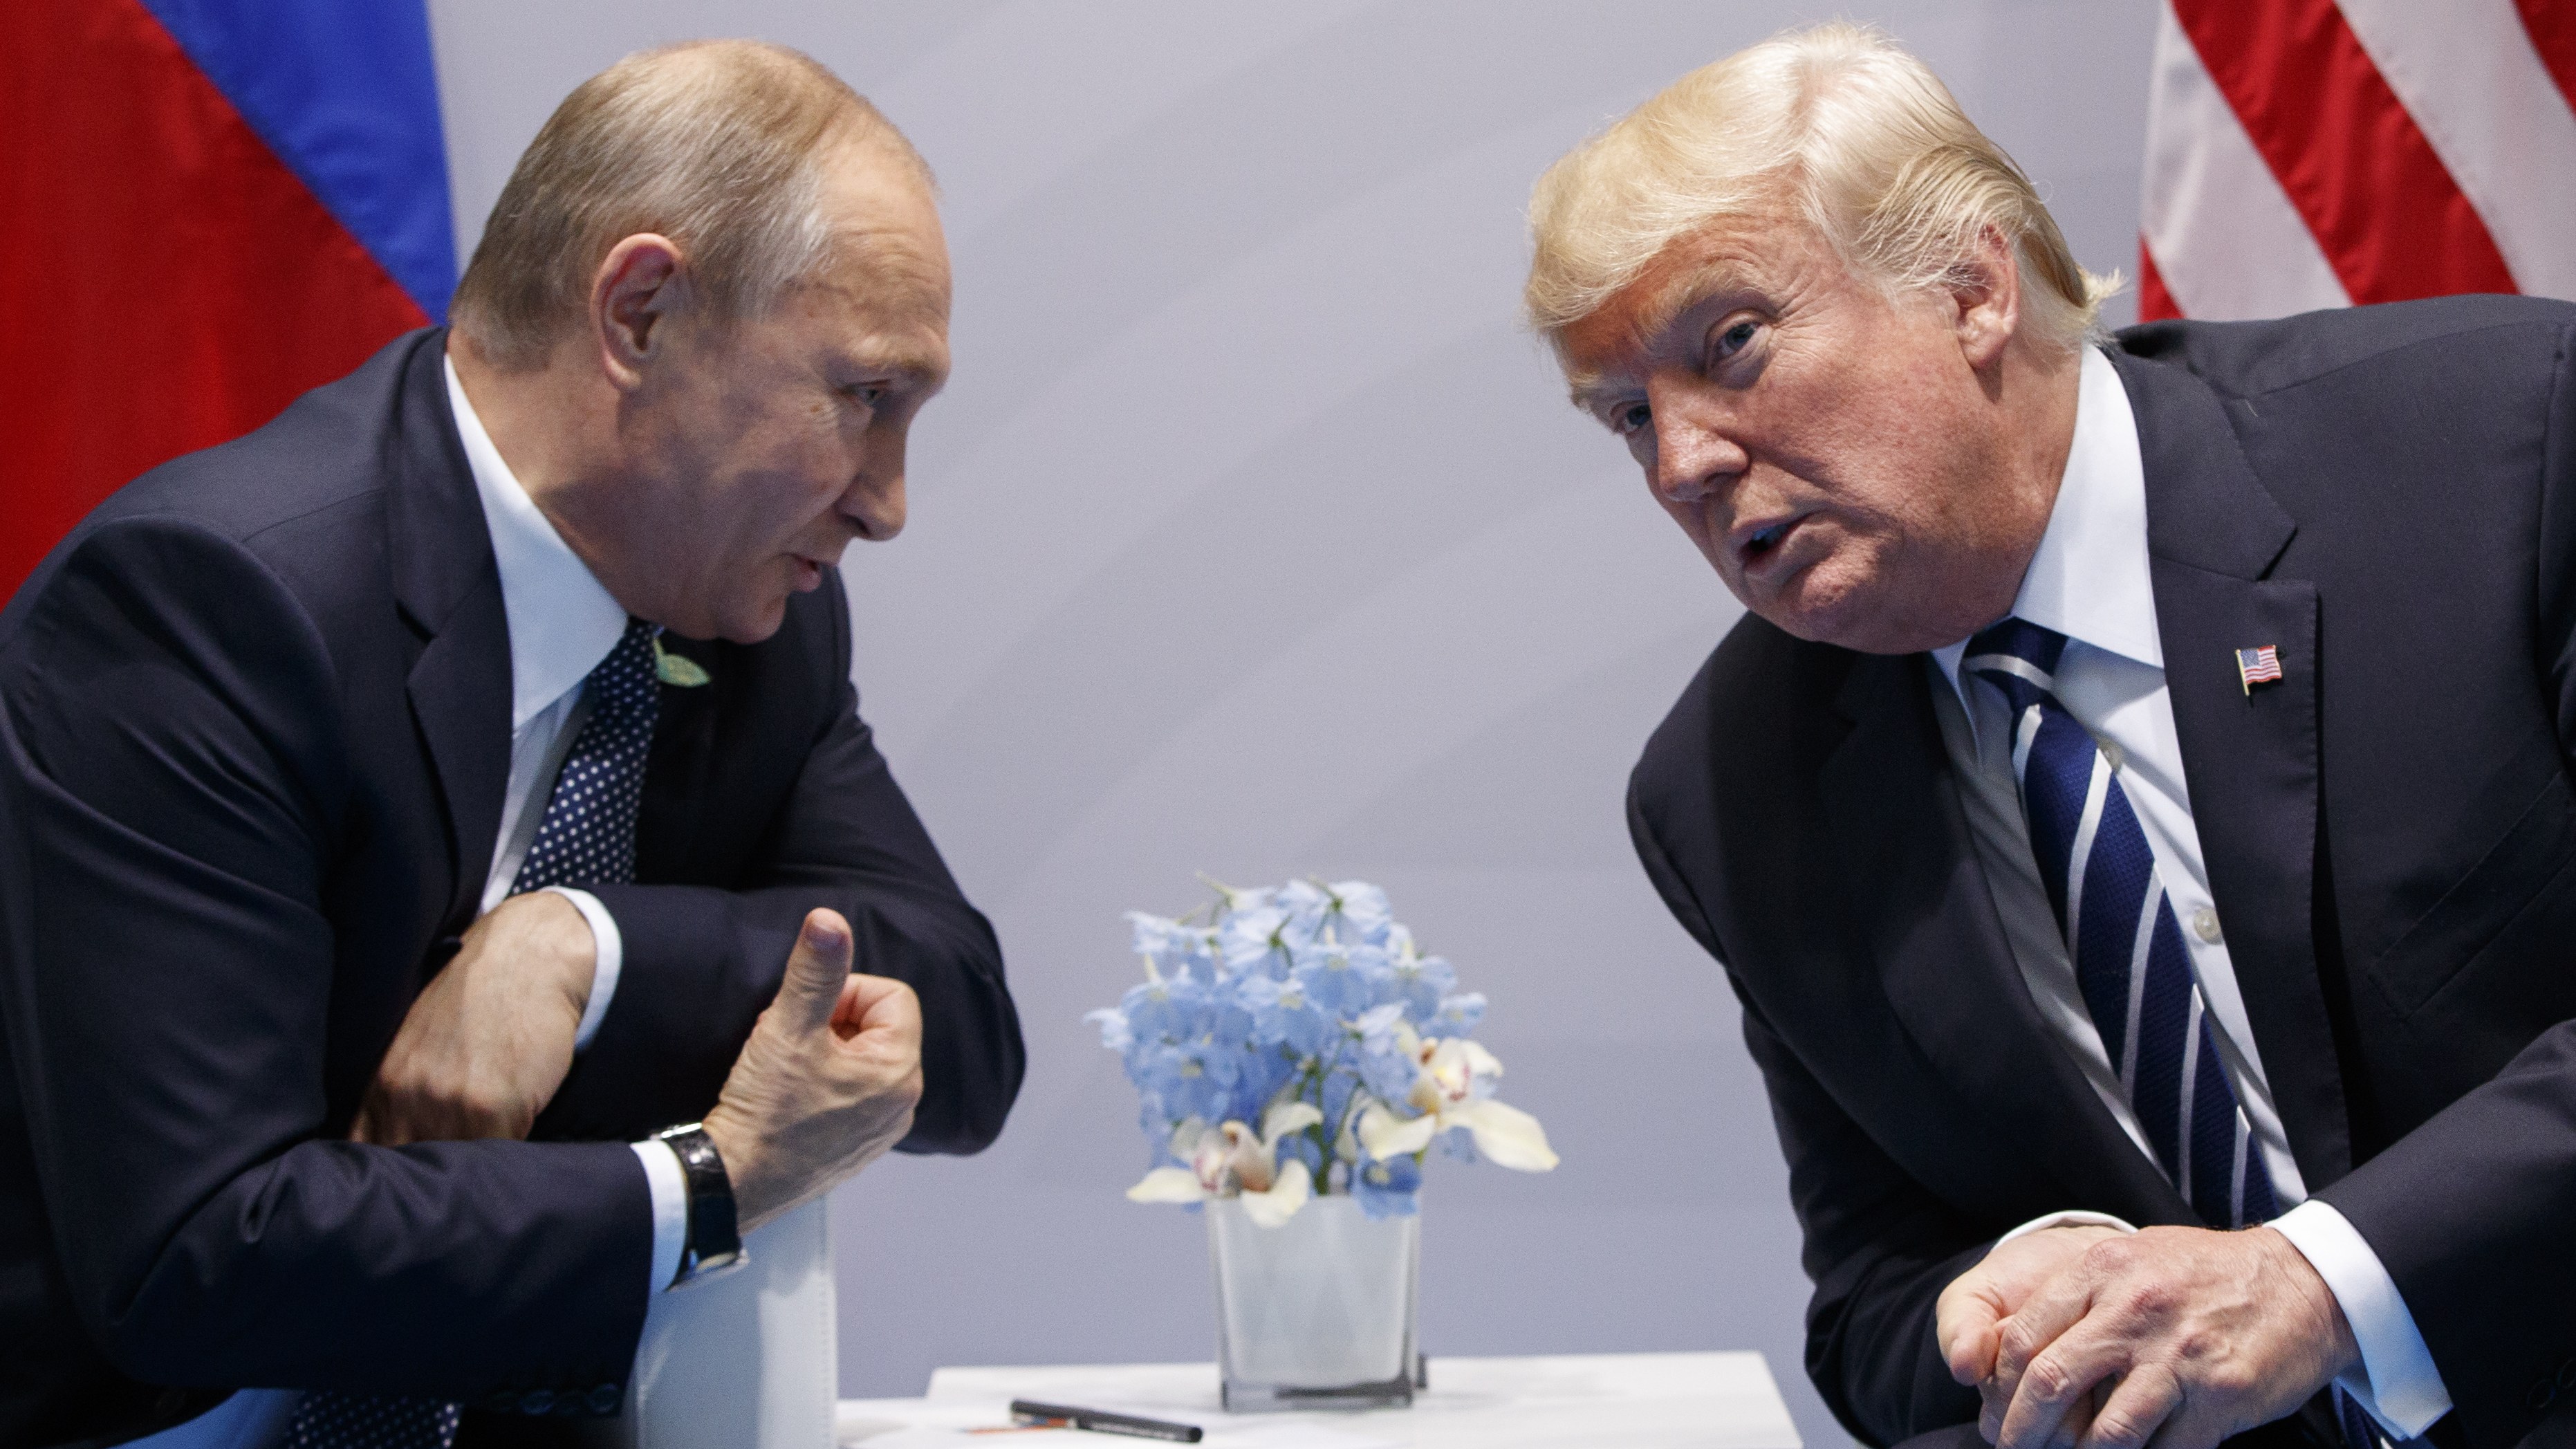 Some positive news for Donald Trump in Russian Federation probe at least?